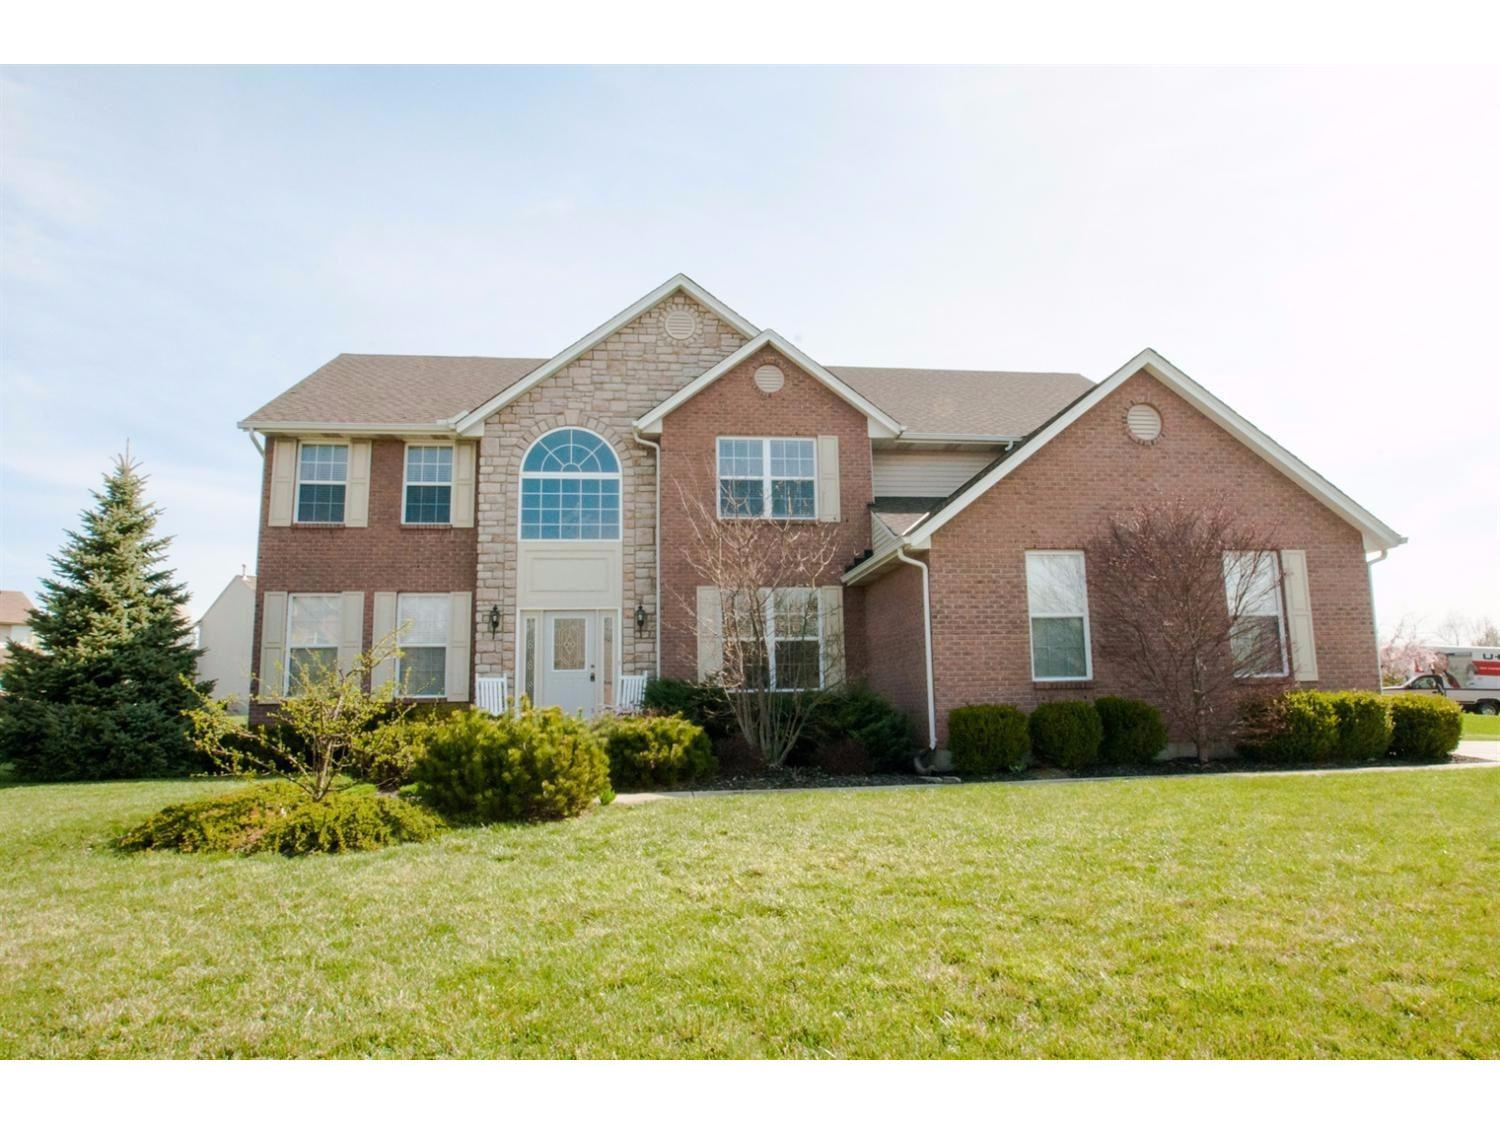 4006 Top Flite Drive, Deerfield Twp., OH 45040